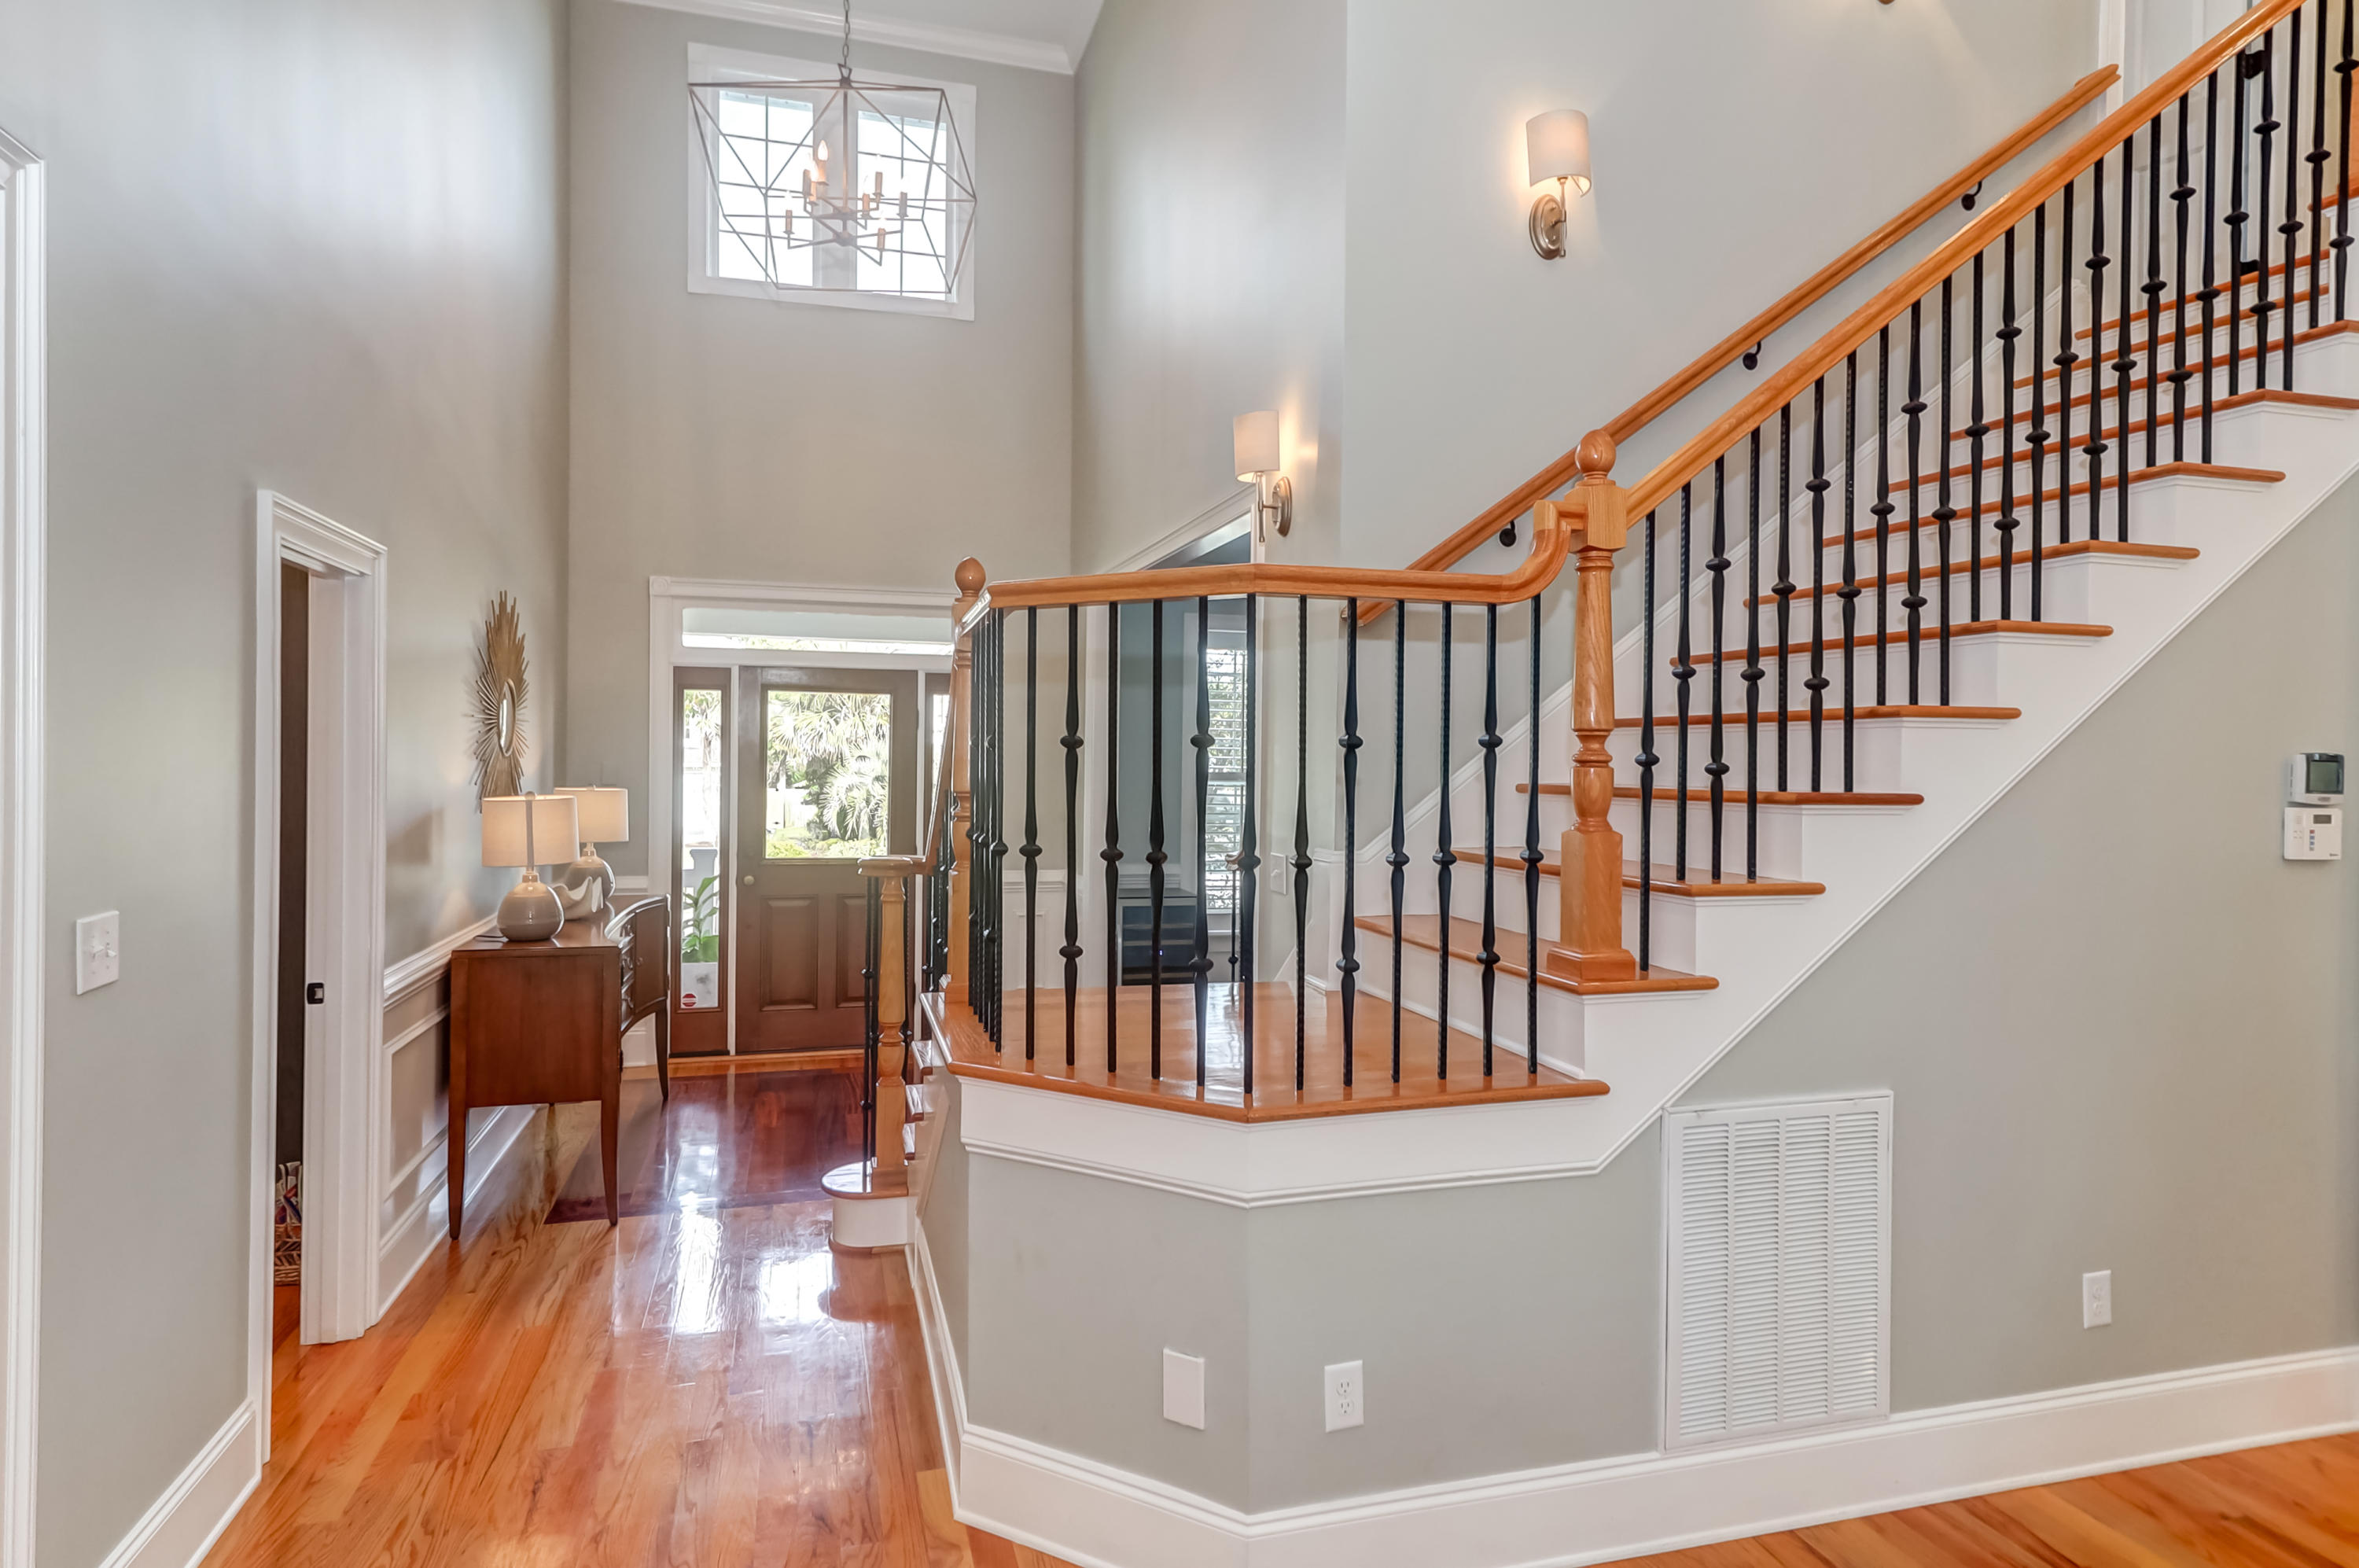 Woodward Pointe Homes For Sale - 657 White Chapel, Charleston, SC - 53